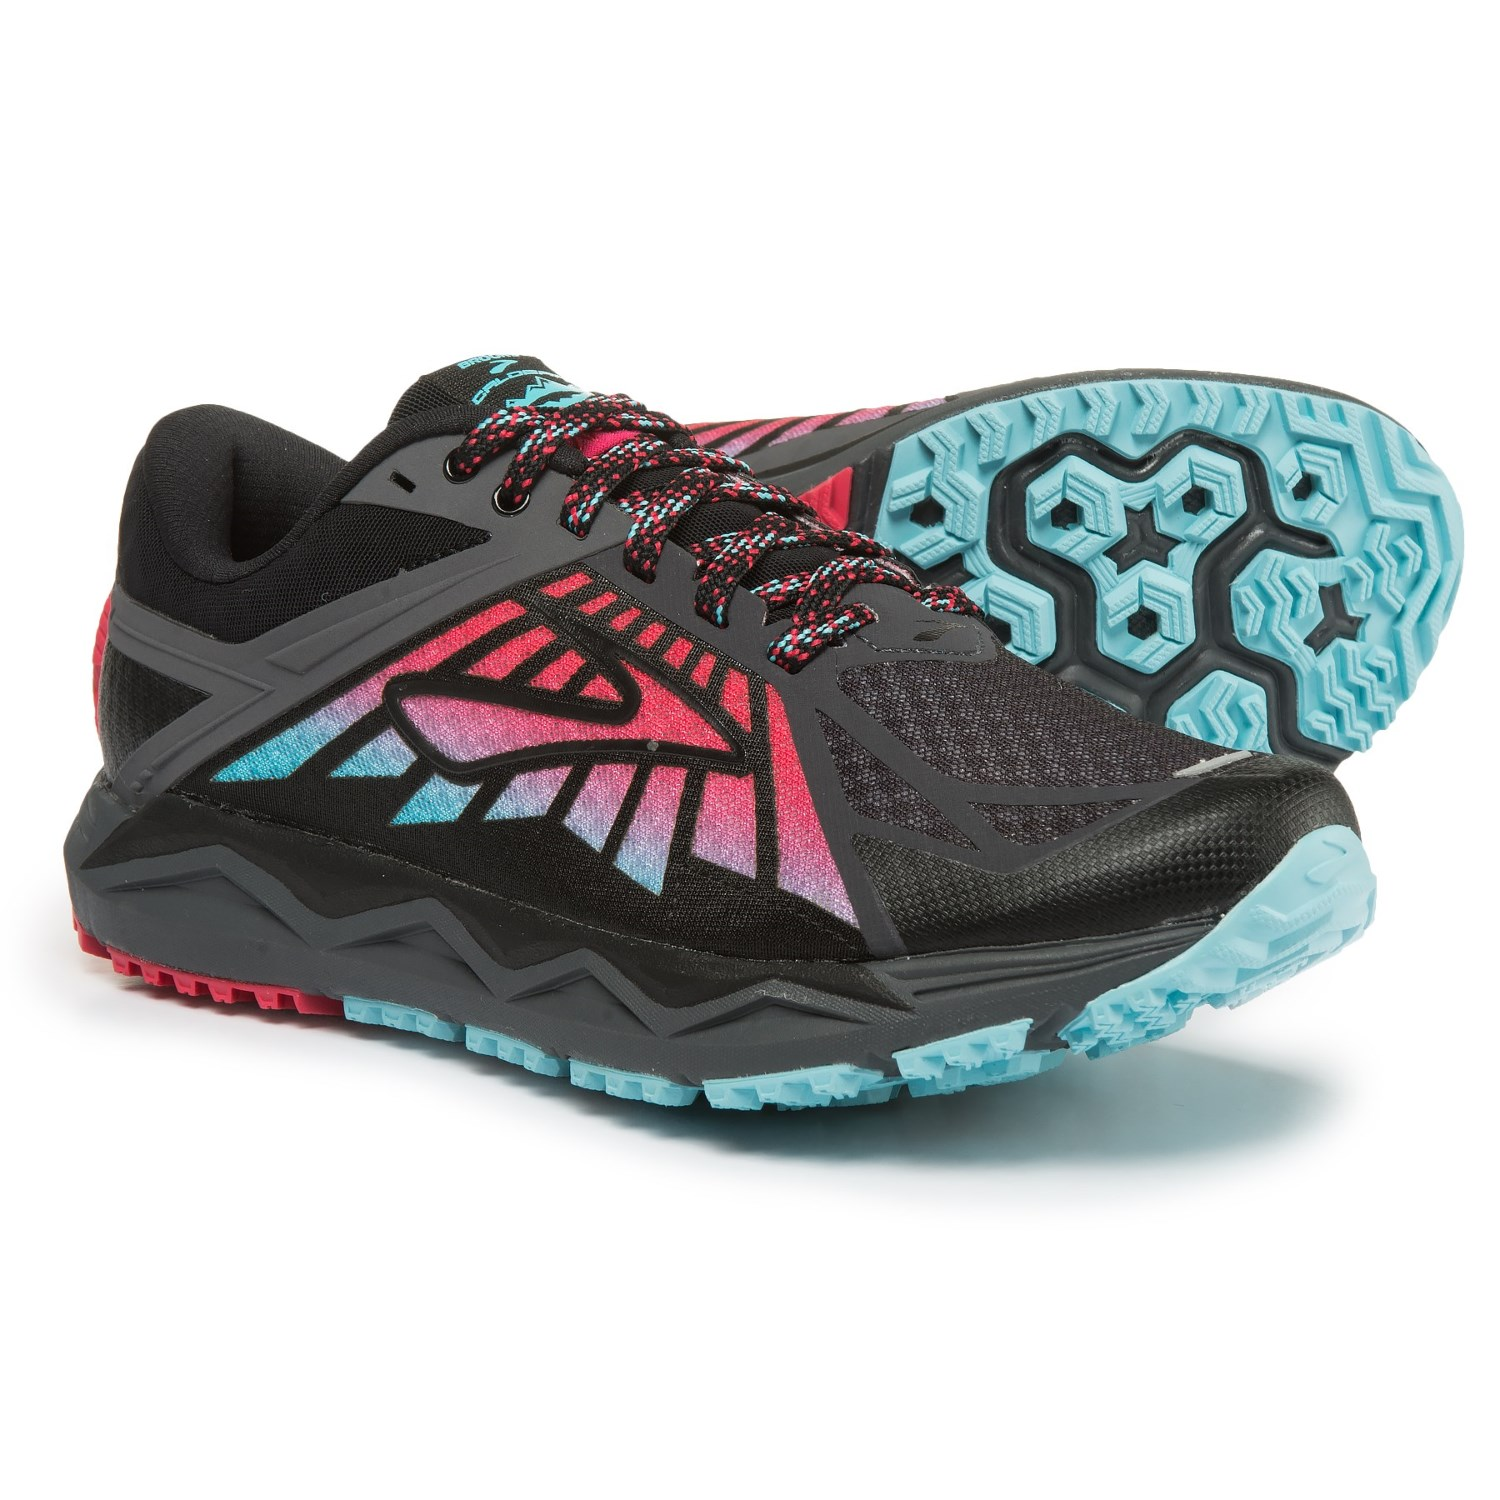 Brooks Caldera Trail Running Shoes (For Women) in Anthracite/Azalea/Black